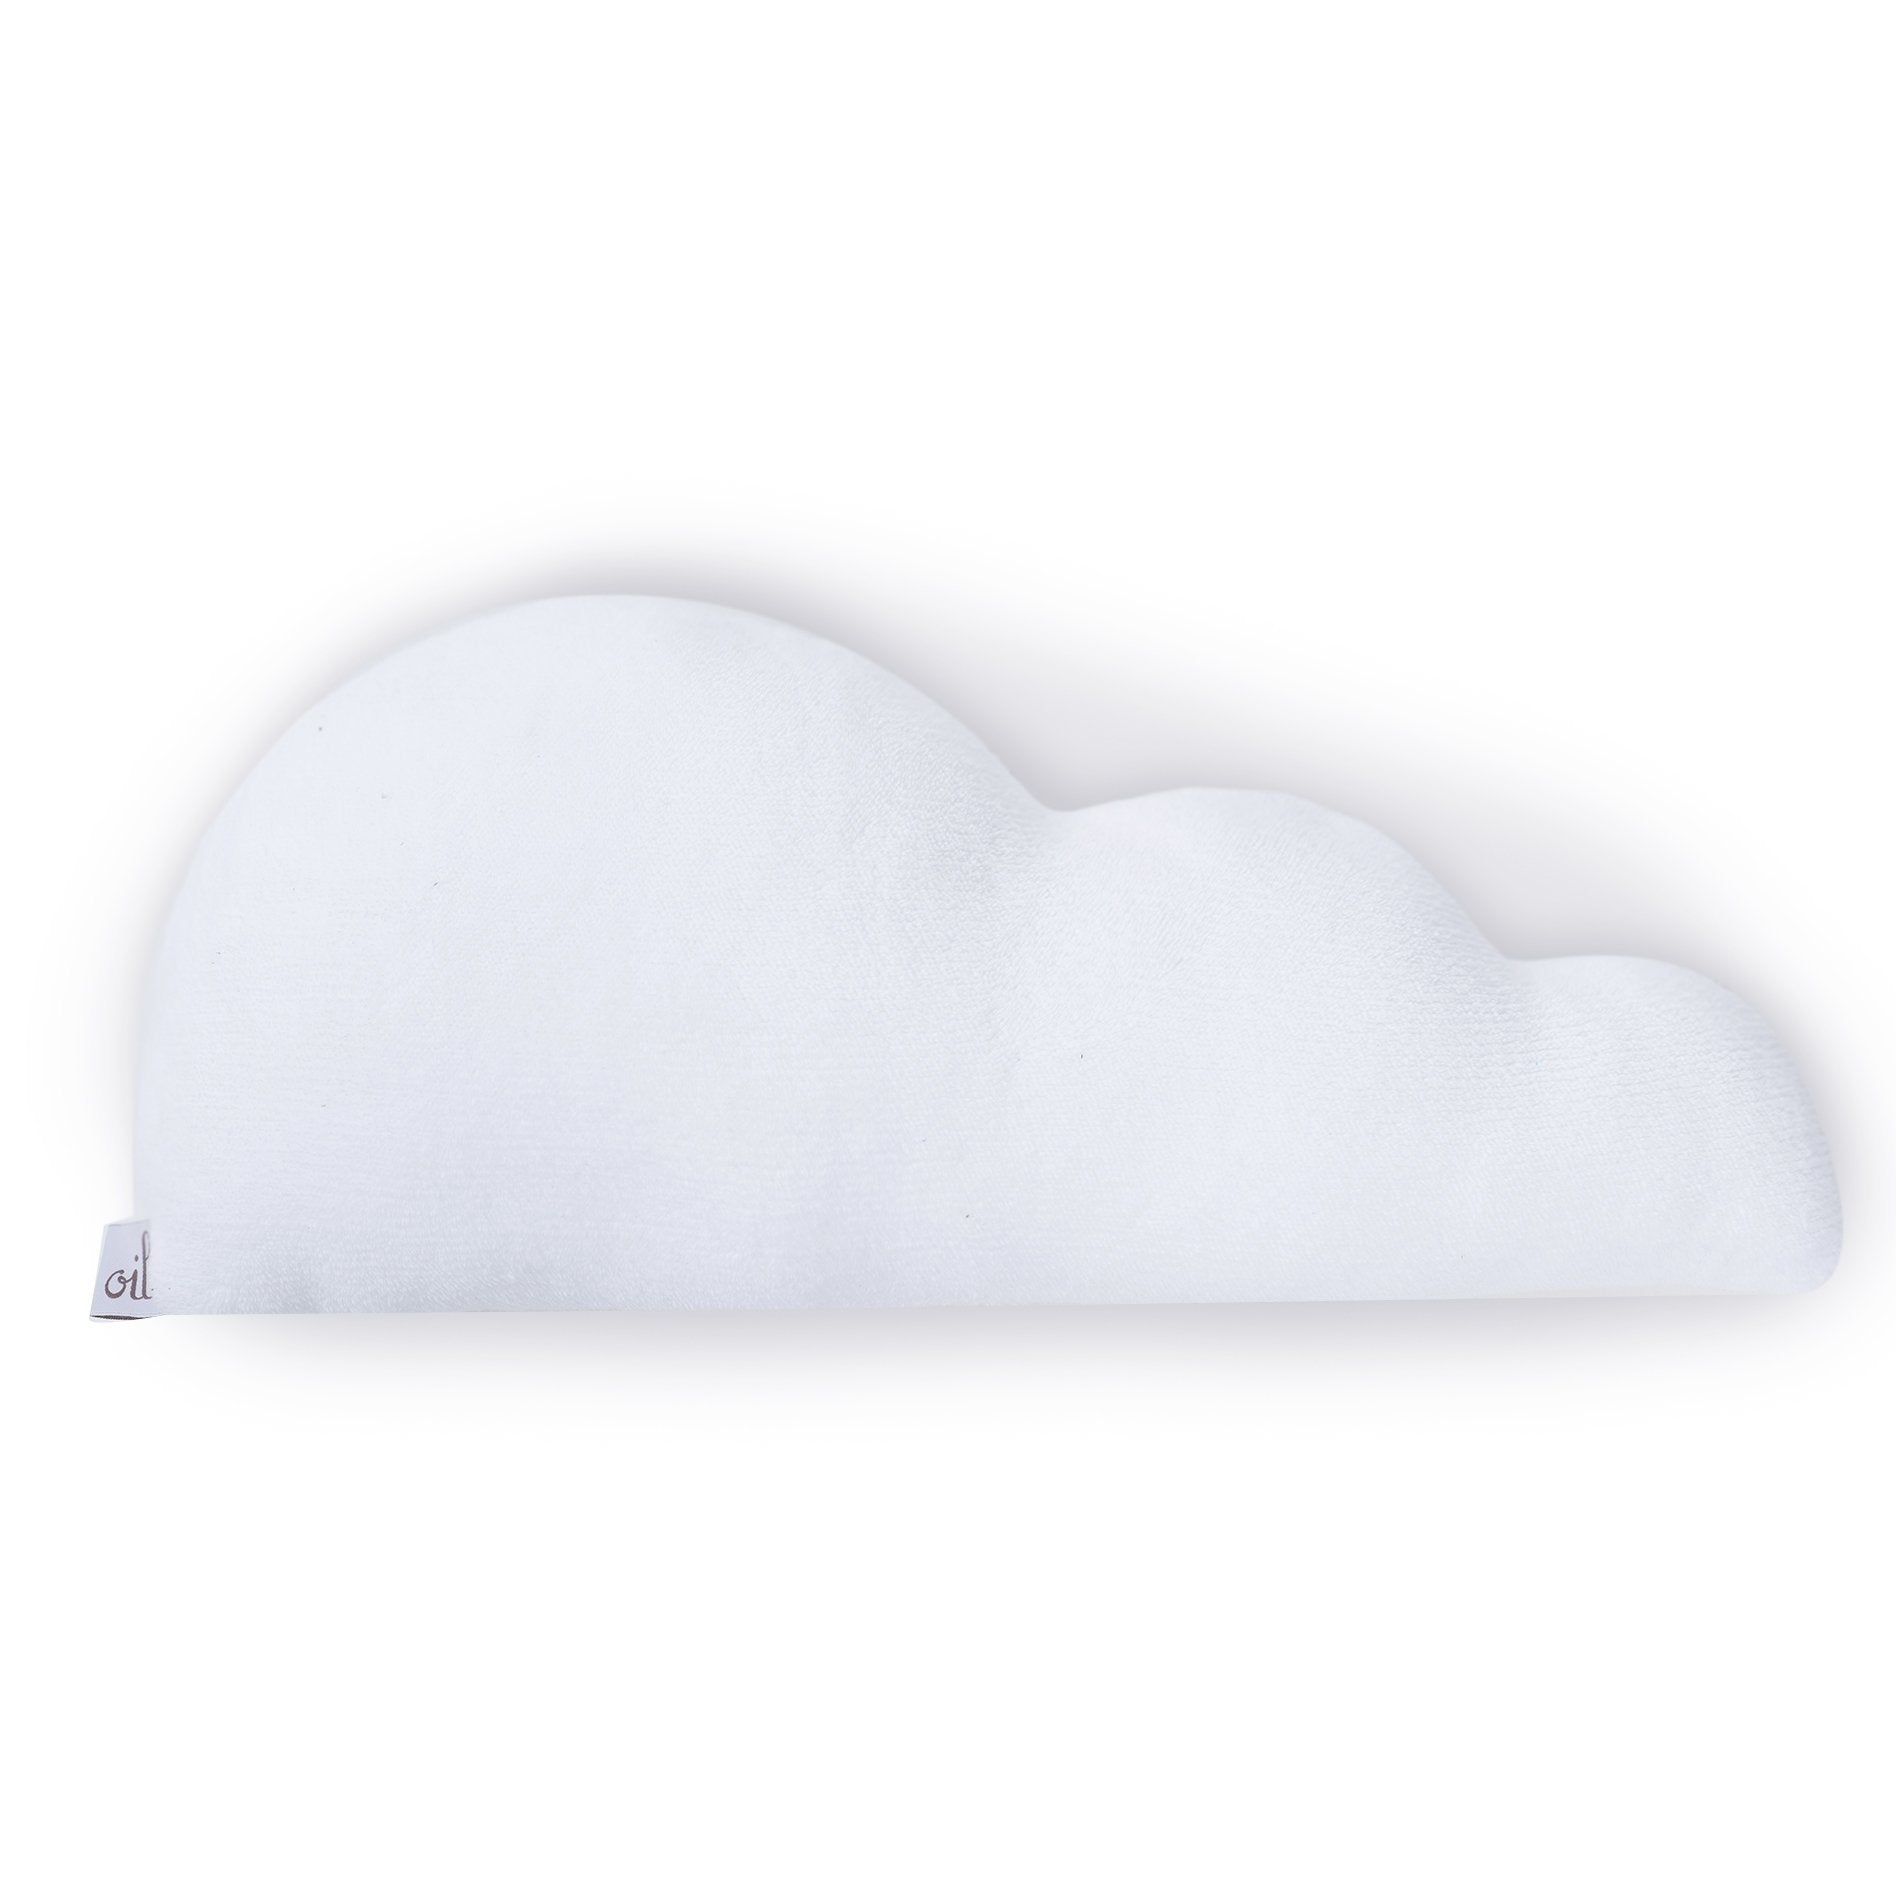 Oilo White Cloud Pillow